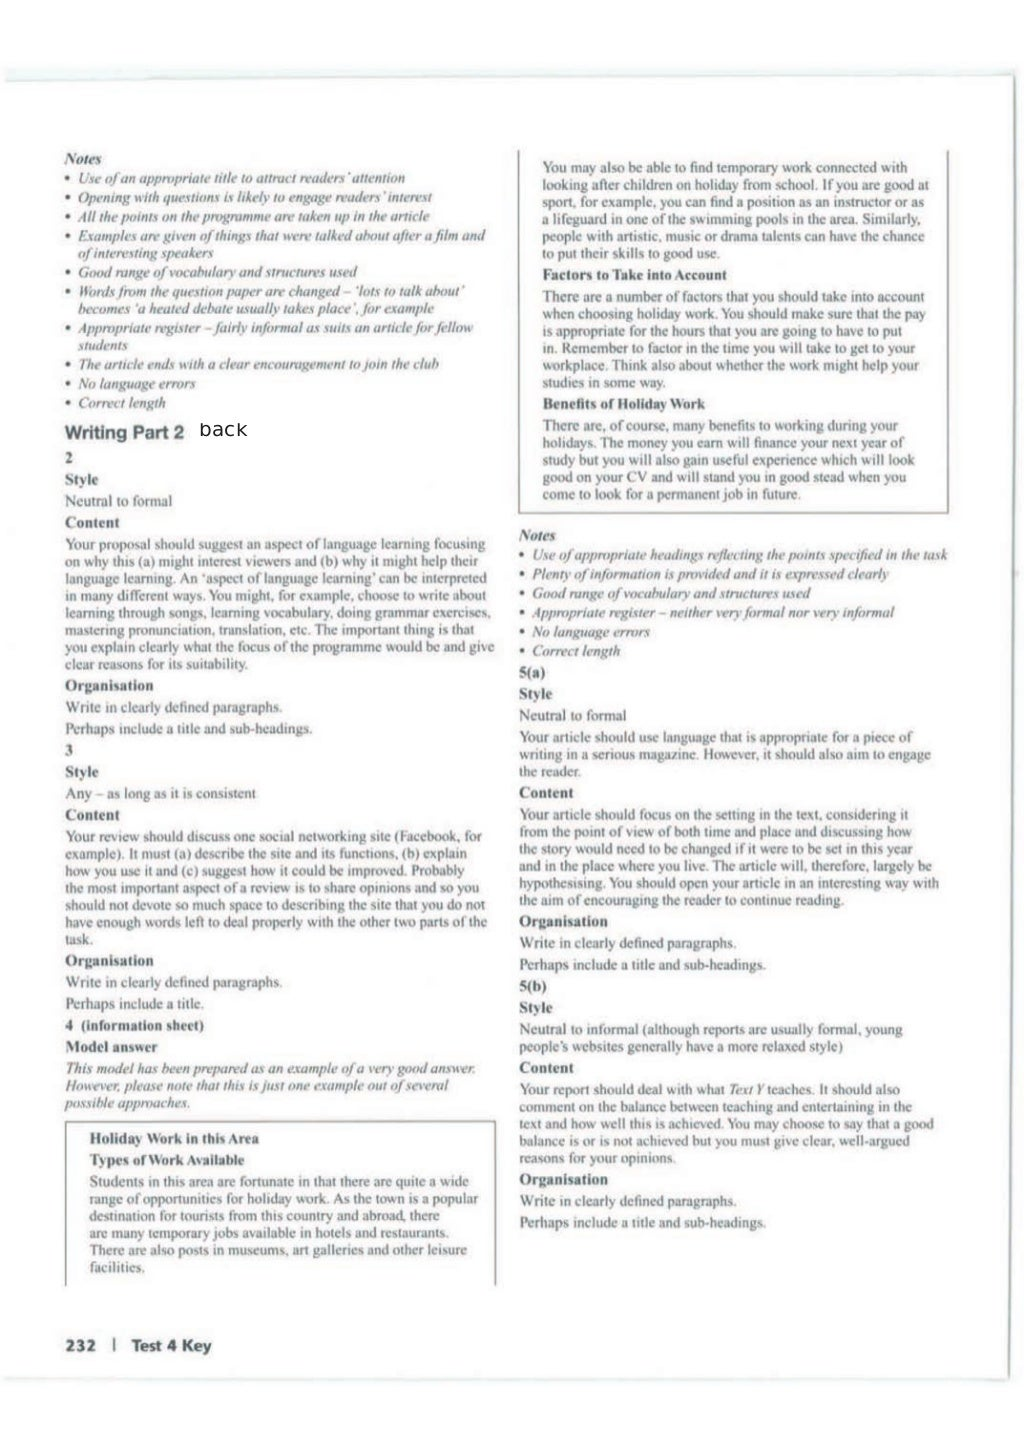 Advanced trainer 6 practice tests with answers book4joy (1) page 233